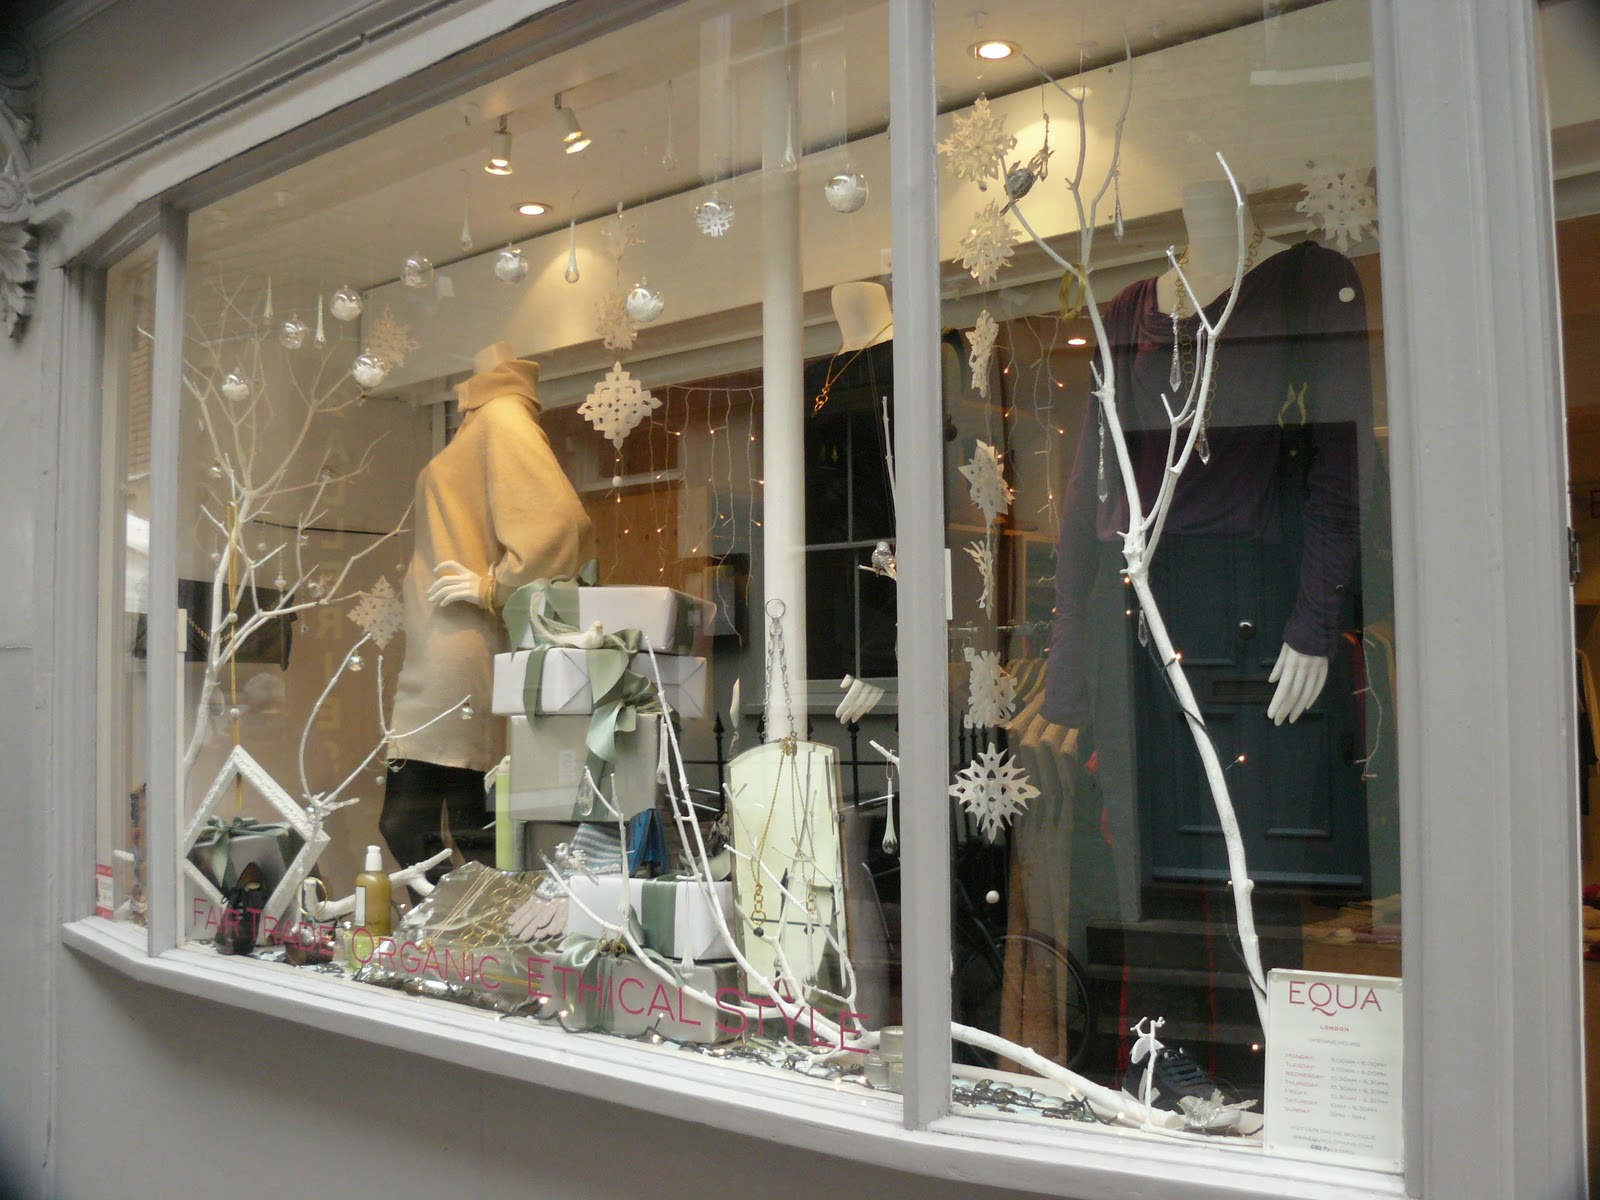 Equa fair trade fashion organic clothing ethical for Boutique window display ideas